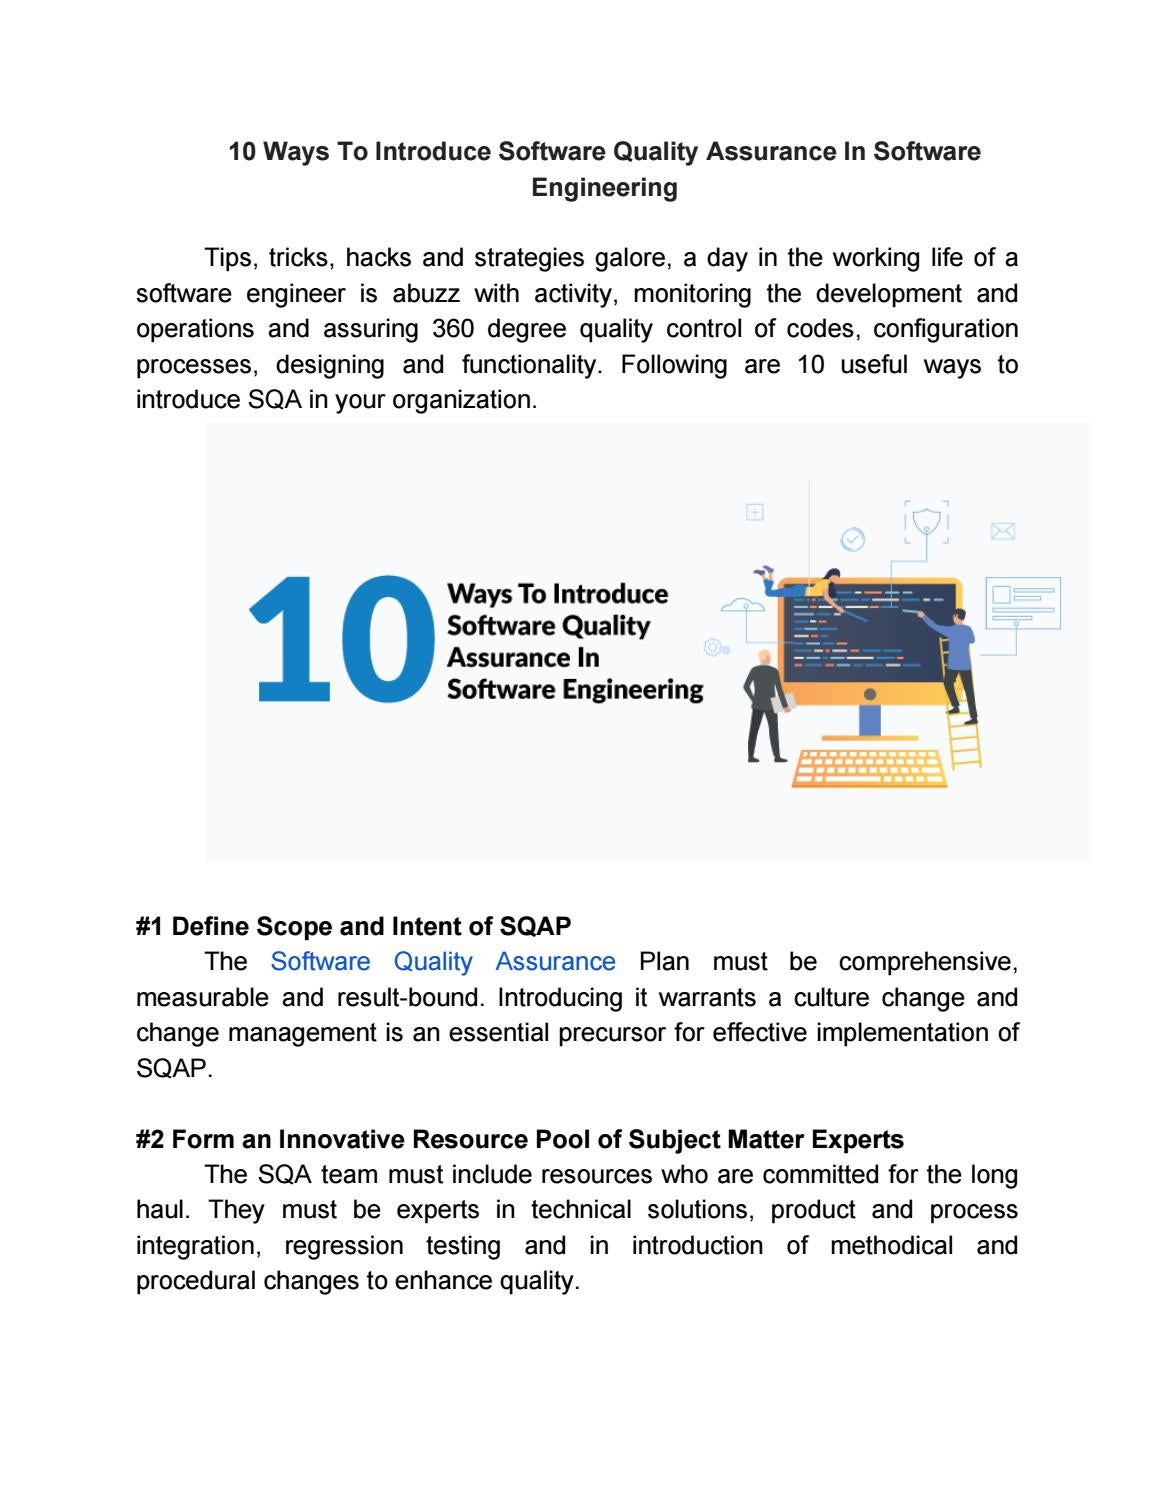 10 Ways To Introduce Software Quality Assurance In Software Engineering By Seo Zucisystems Issuu